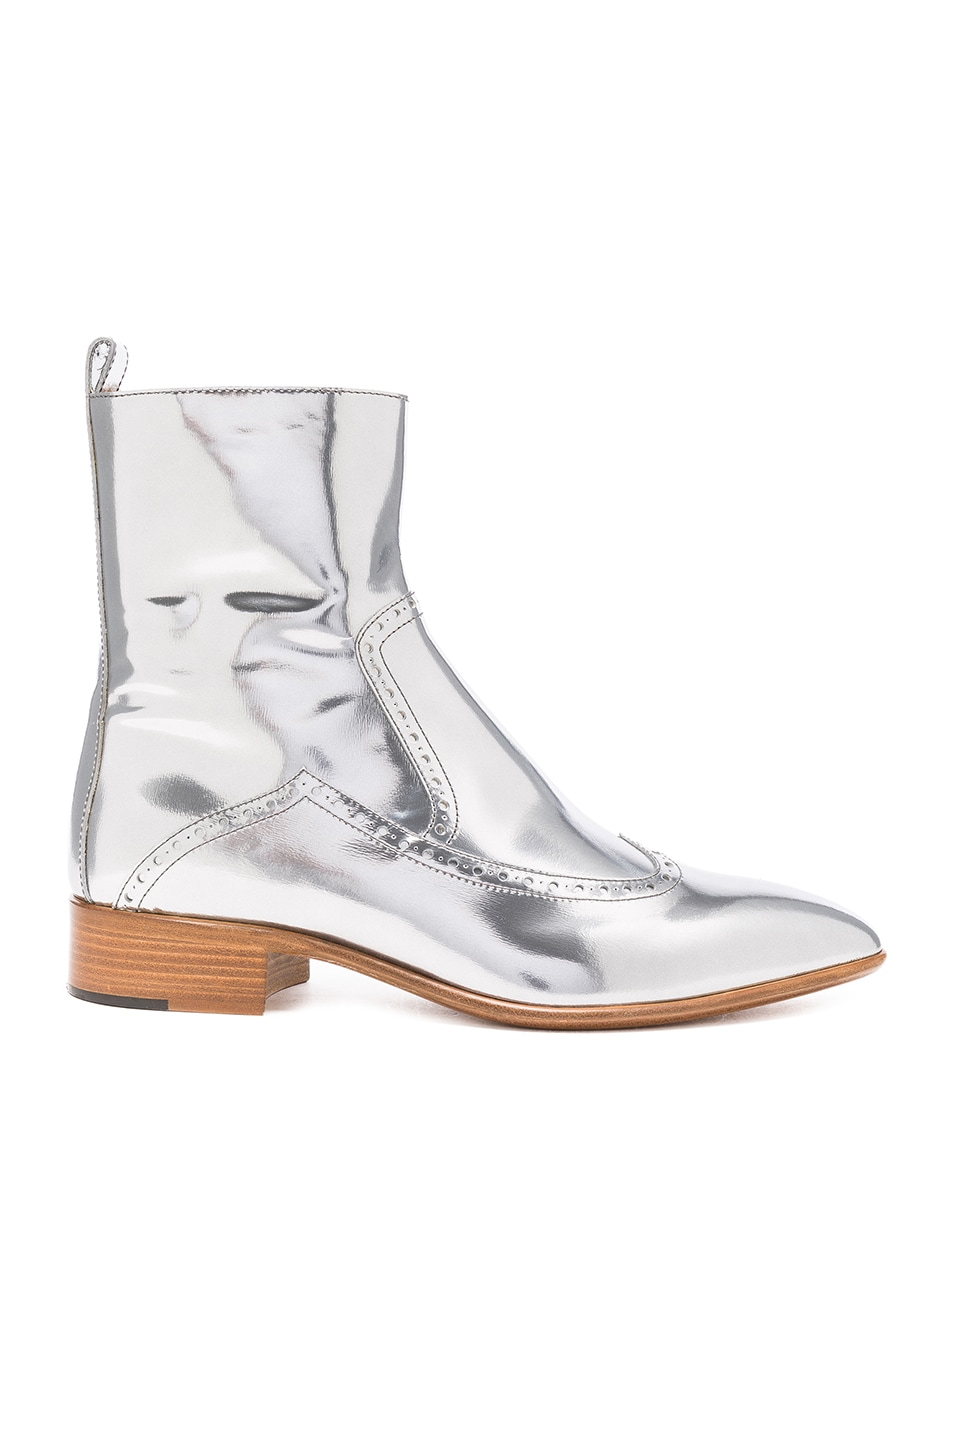 Image 1 of Maison Margiela Leather Ankle Boots in Silver